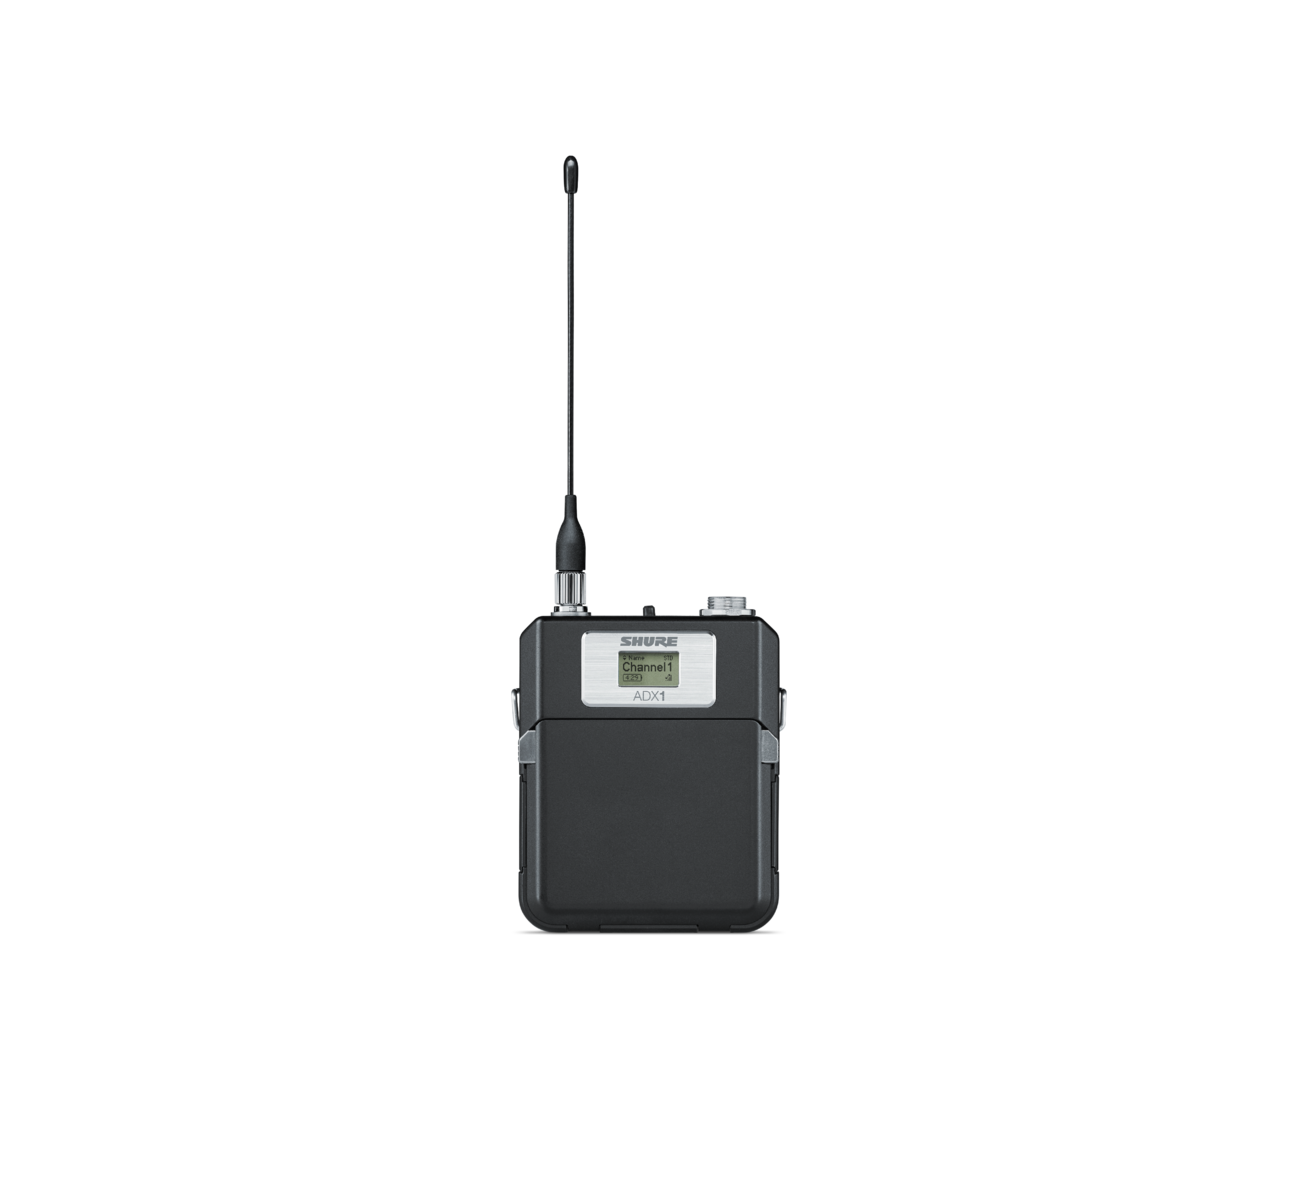 SHURE ADX1 - מסדרת AXIENT DIGITAL - משדר גוף איכותי ביותר . ADX BODYPACK TRANSMITTER W/TA4F CONNECTOR